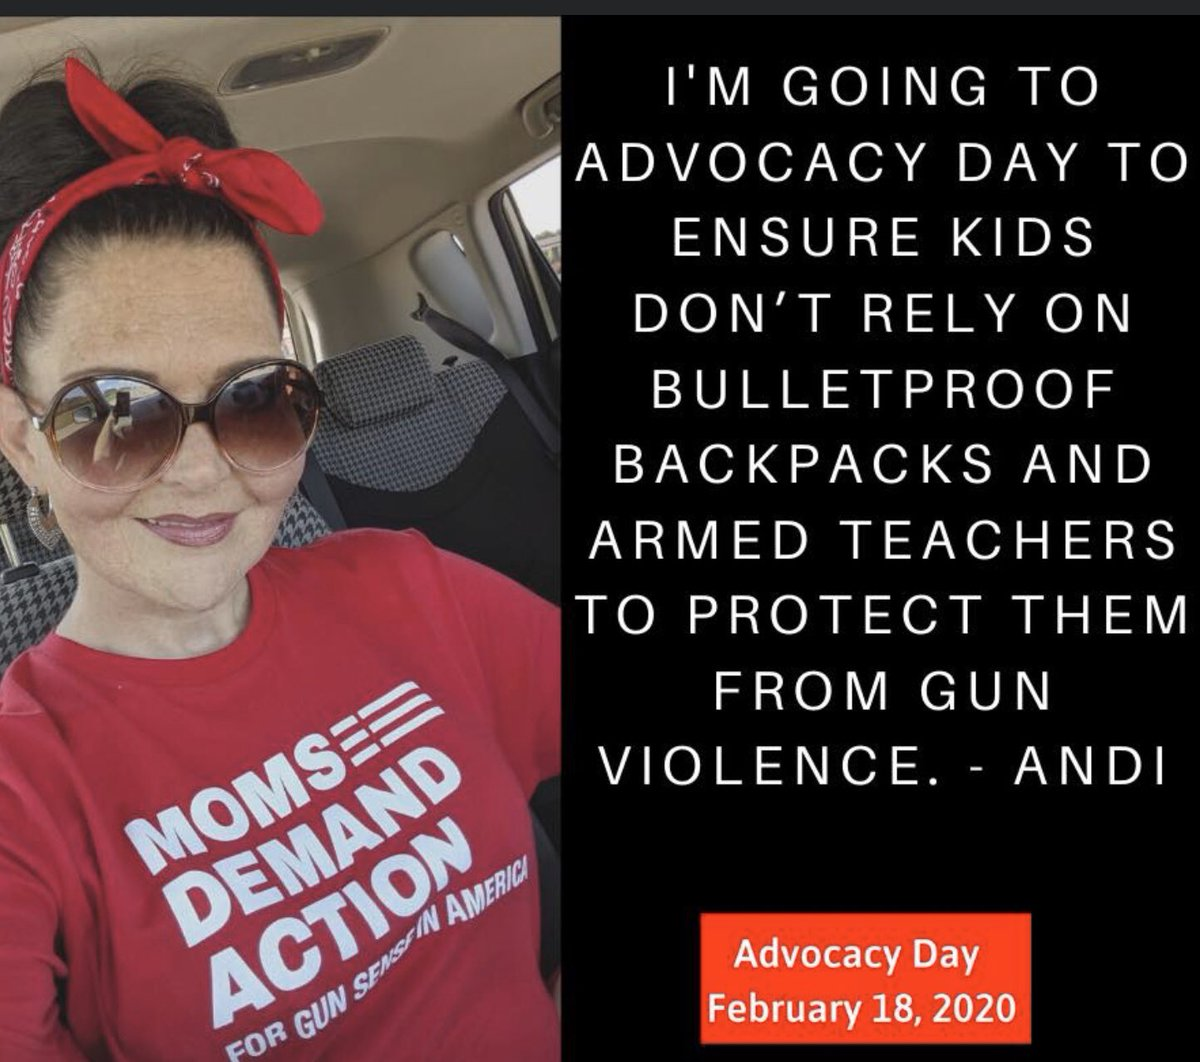 Up at 5 this morning for coffee and a shower before I leave to attend Advocacy Day in OKC! We're going to keep fighting for common sense gun reform!  #GunControlNow <br>http://pic.twitter.com/TnzC4jQHSq